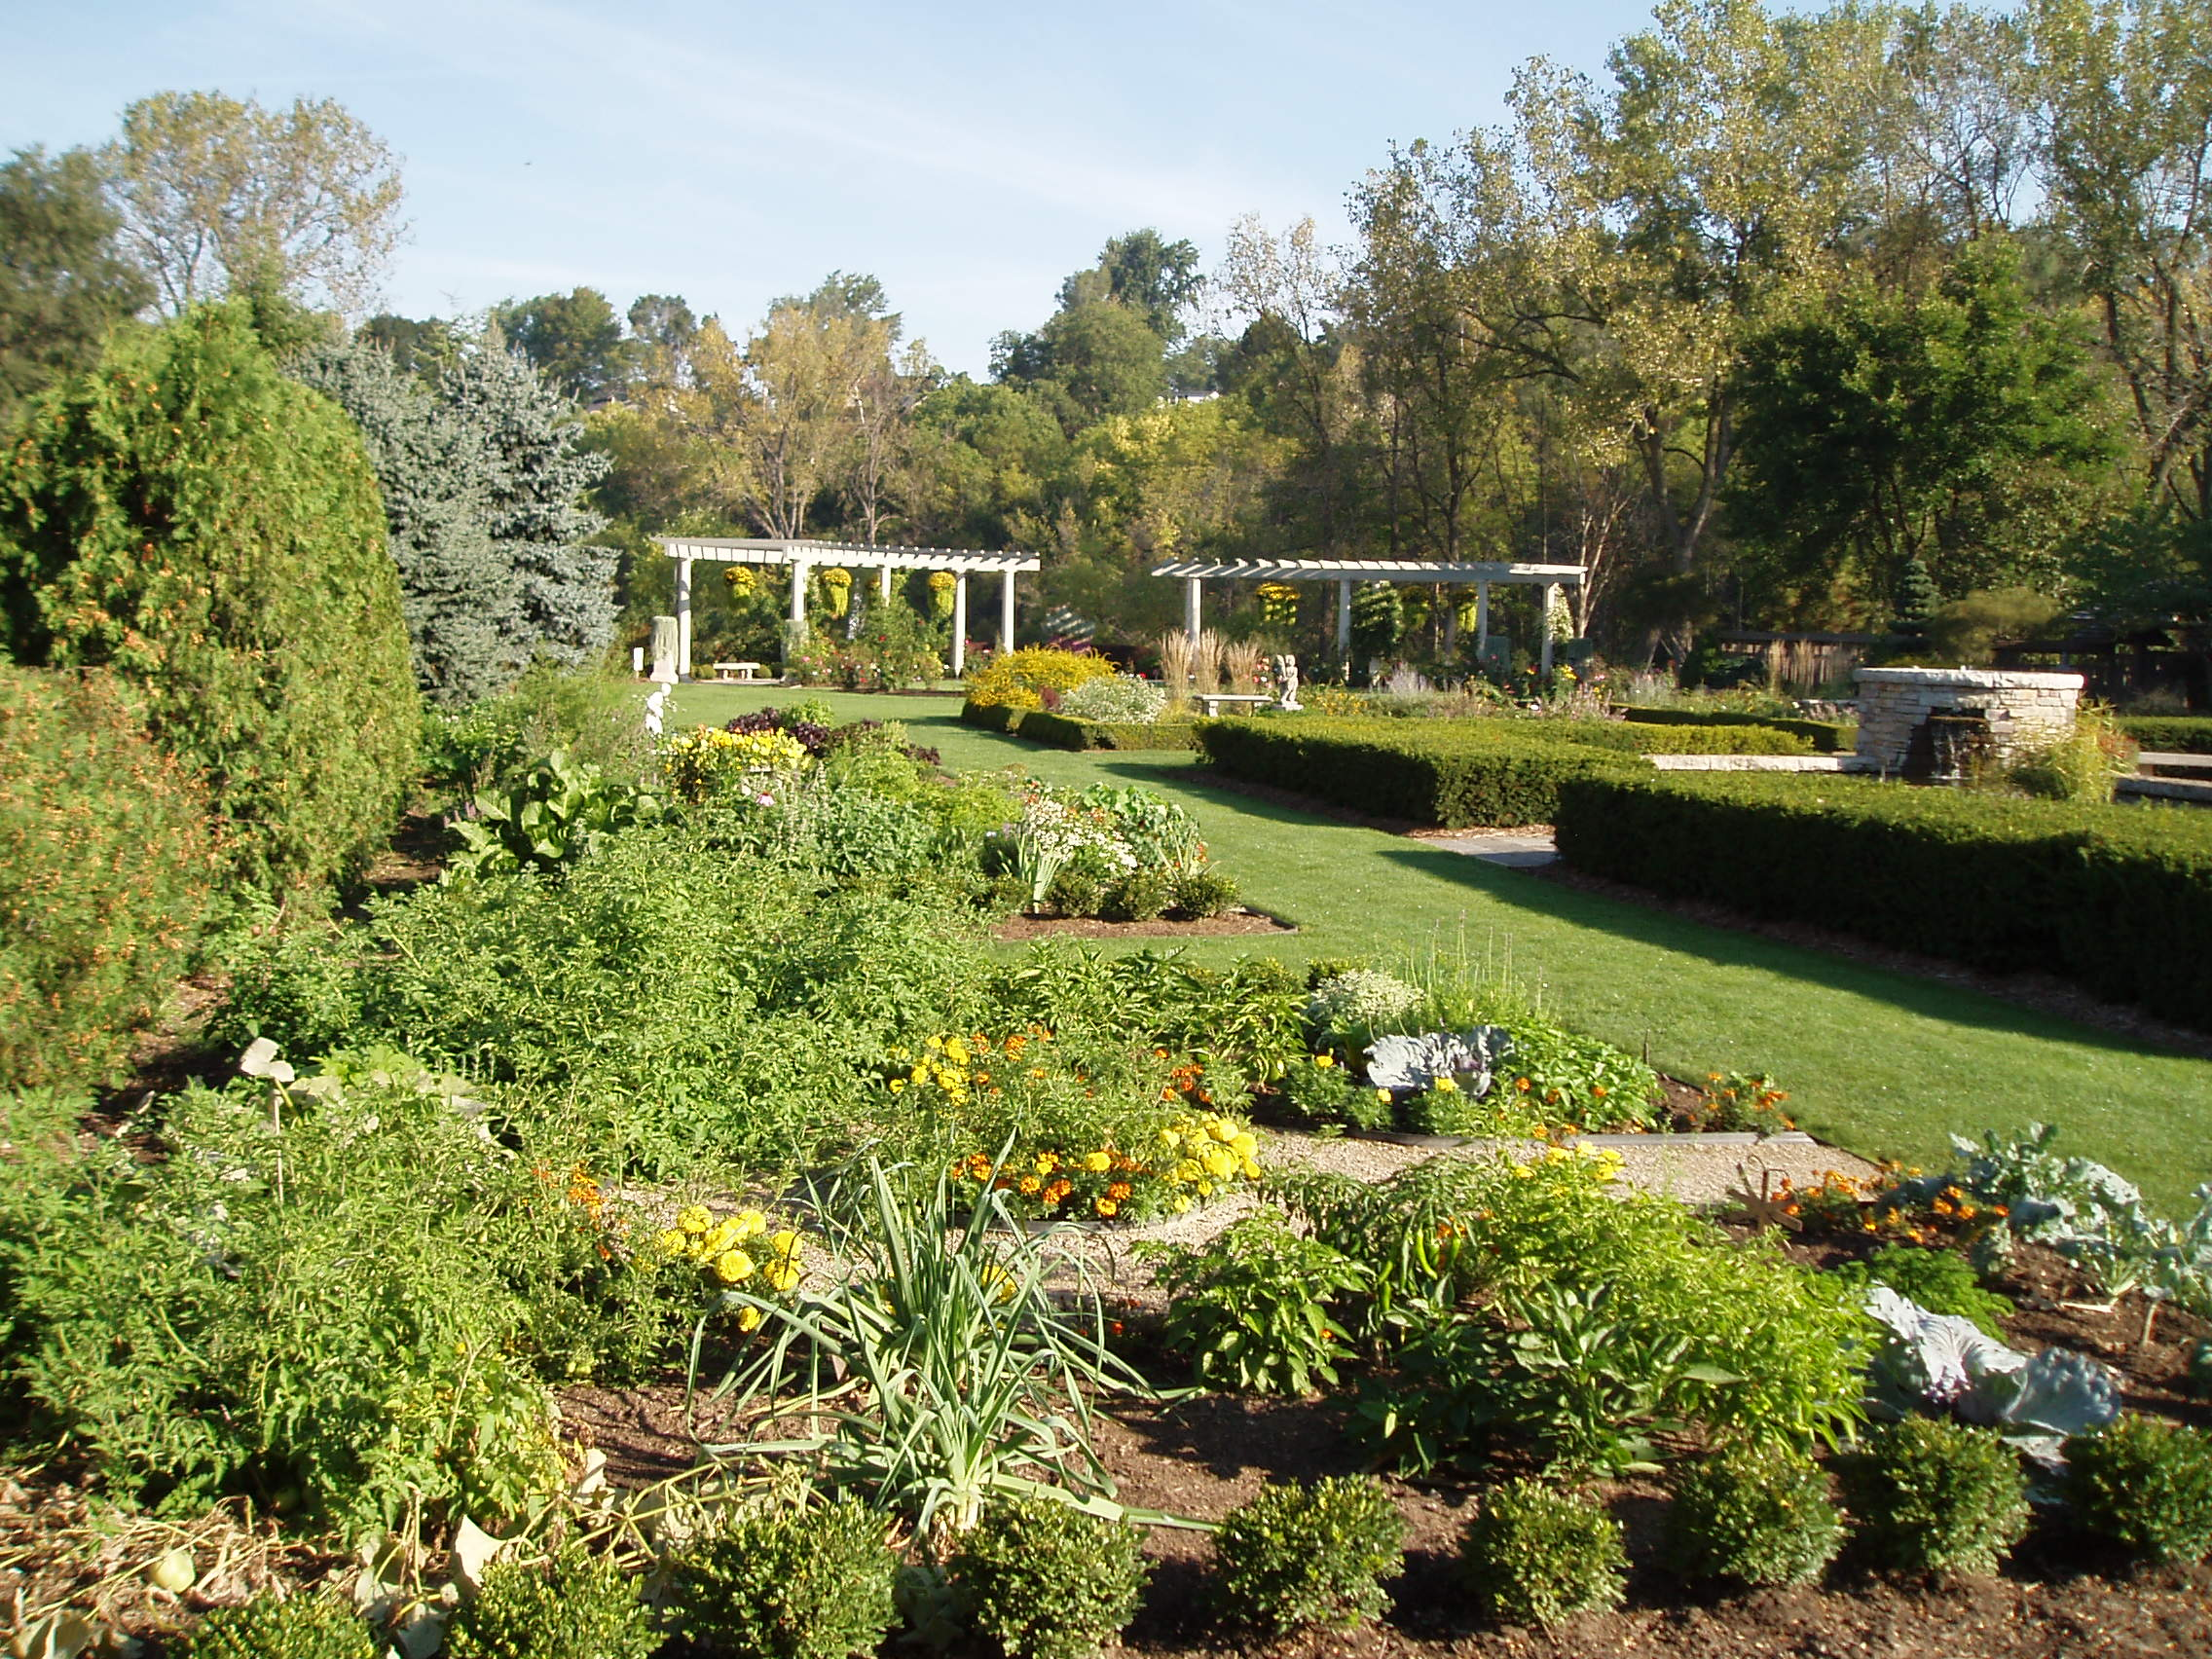 We'll tour Rotary Botanical Gardens' herb garden with their director of horticulture, Mark Dwyer.